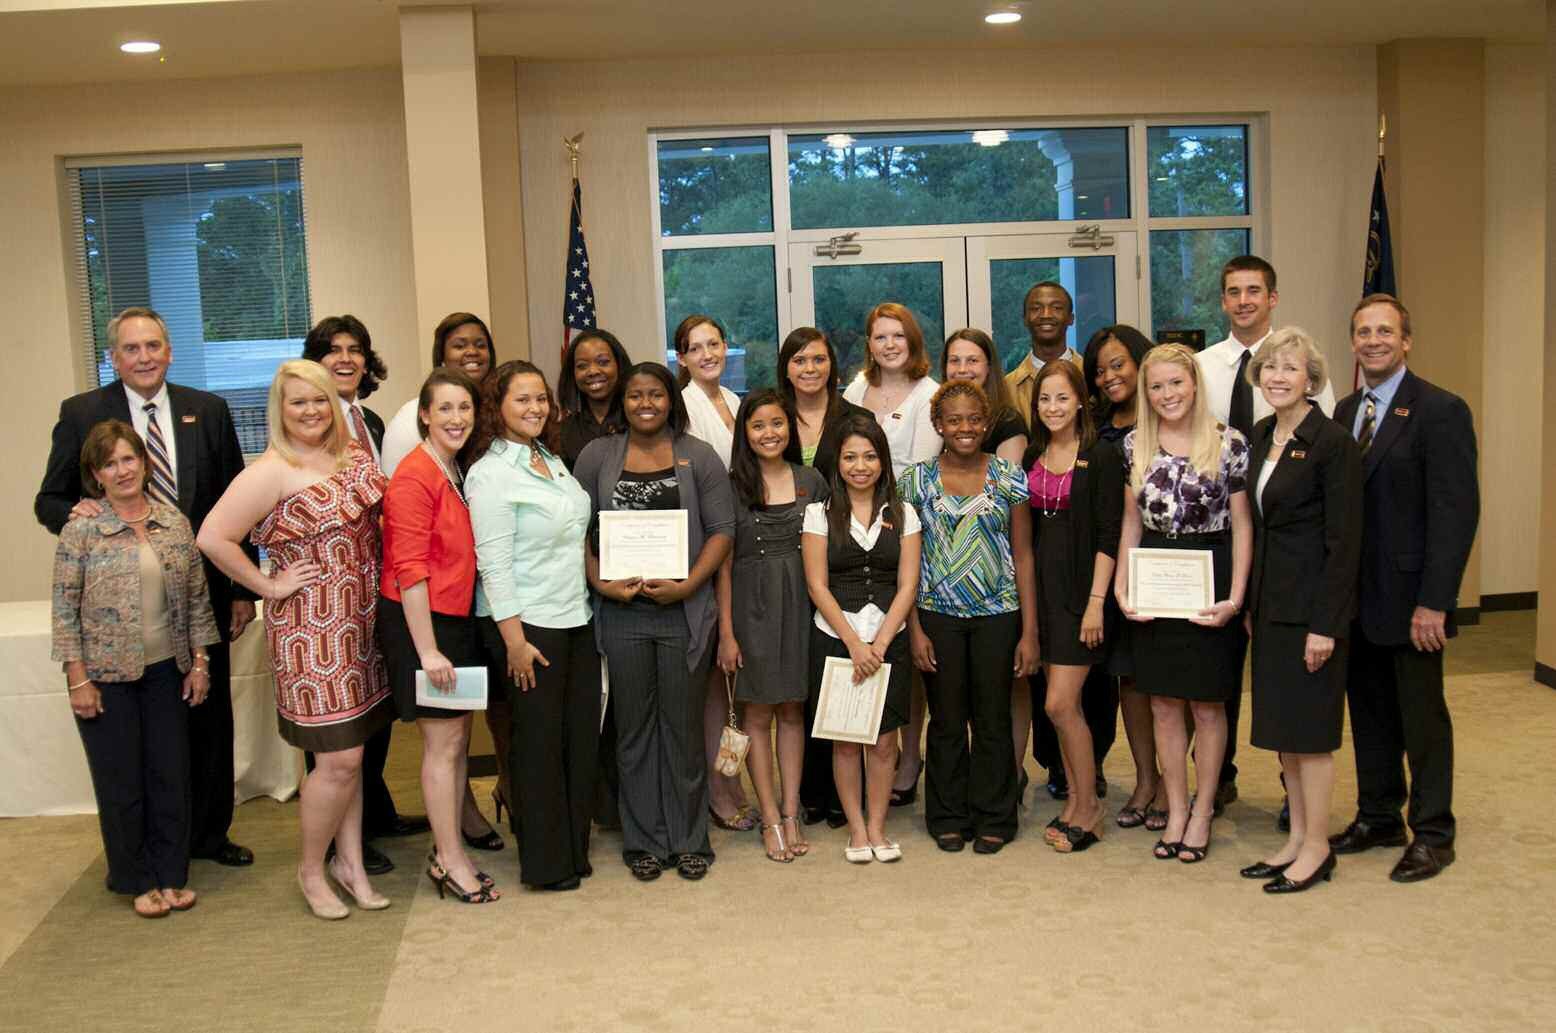 The Nick Mamalakis Emerging Leader Class of 2011 with Mr. and Mrs. J. Cliff McCurry, (far left); Armstrong President Linda Bleicken and Bill Kelso, interim vice president of student affairs, (far right); and assistant to the vice president Christine Sutton (fifth from left)